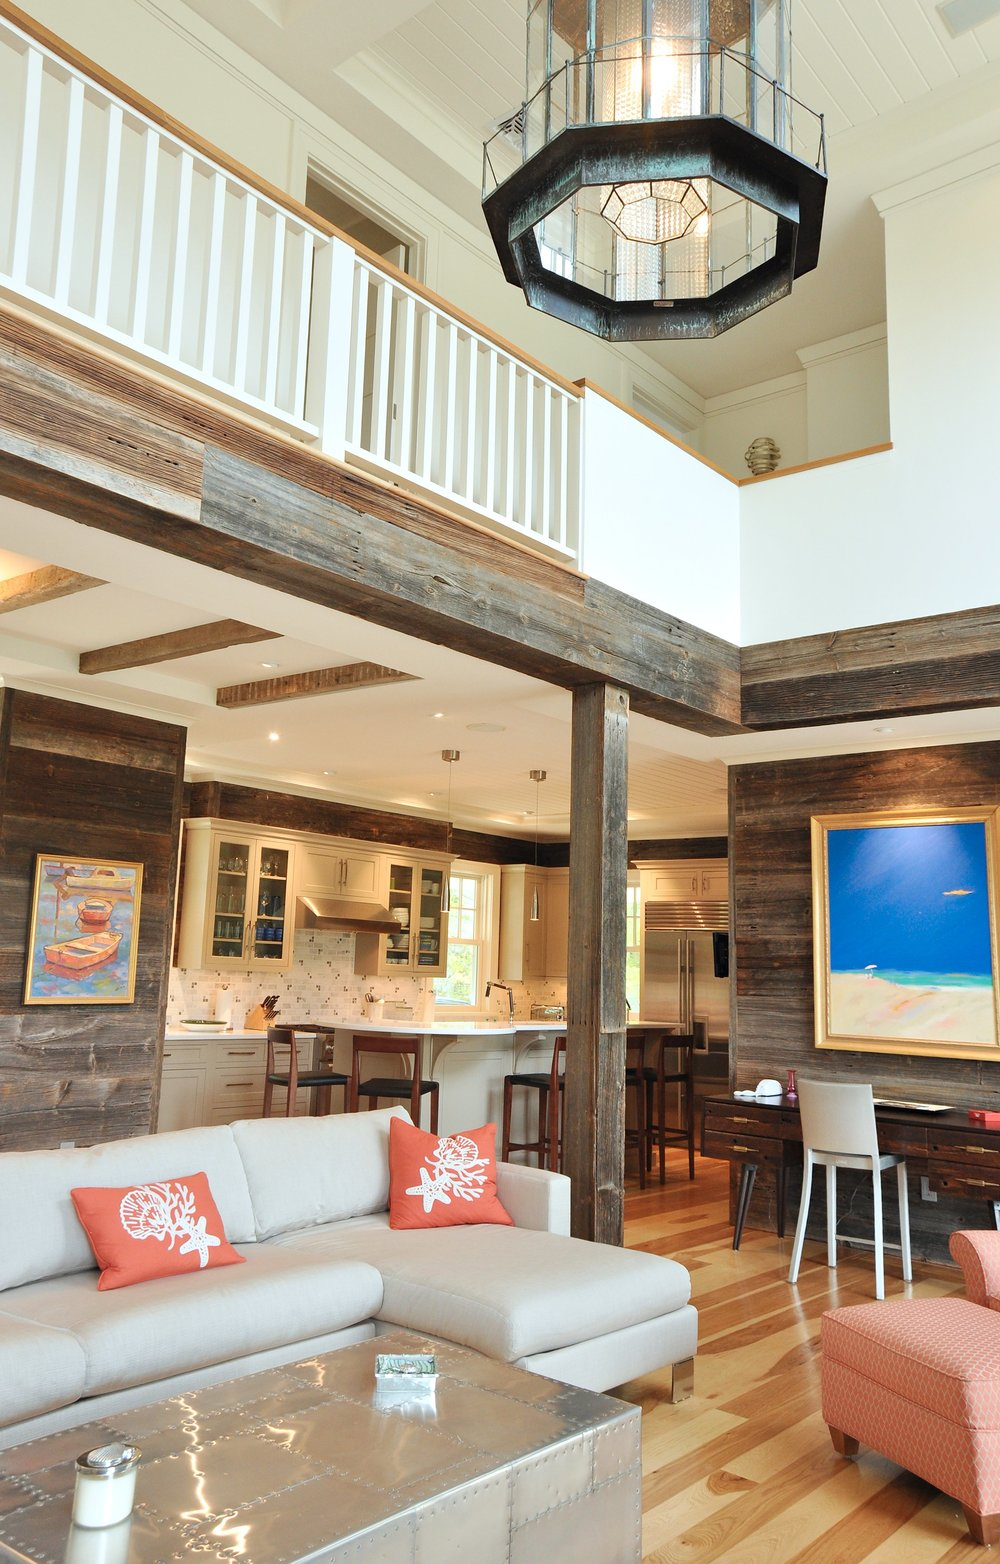 Barnwood_Loft_Railing_Lantern_Glass_Chandelier_Vaulted_Ceilings.jpg